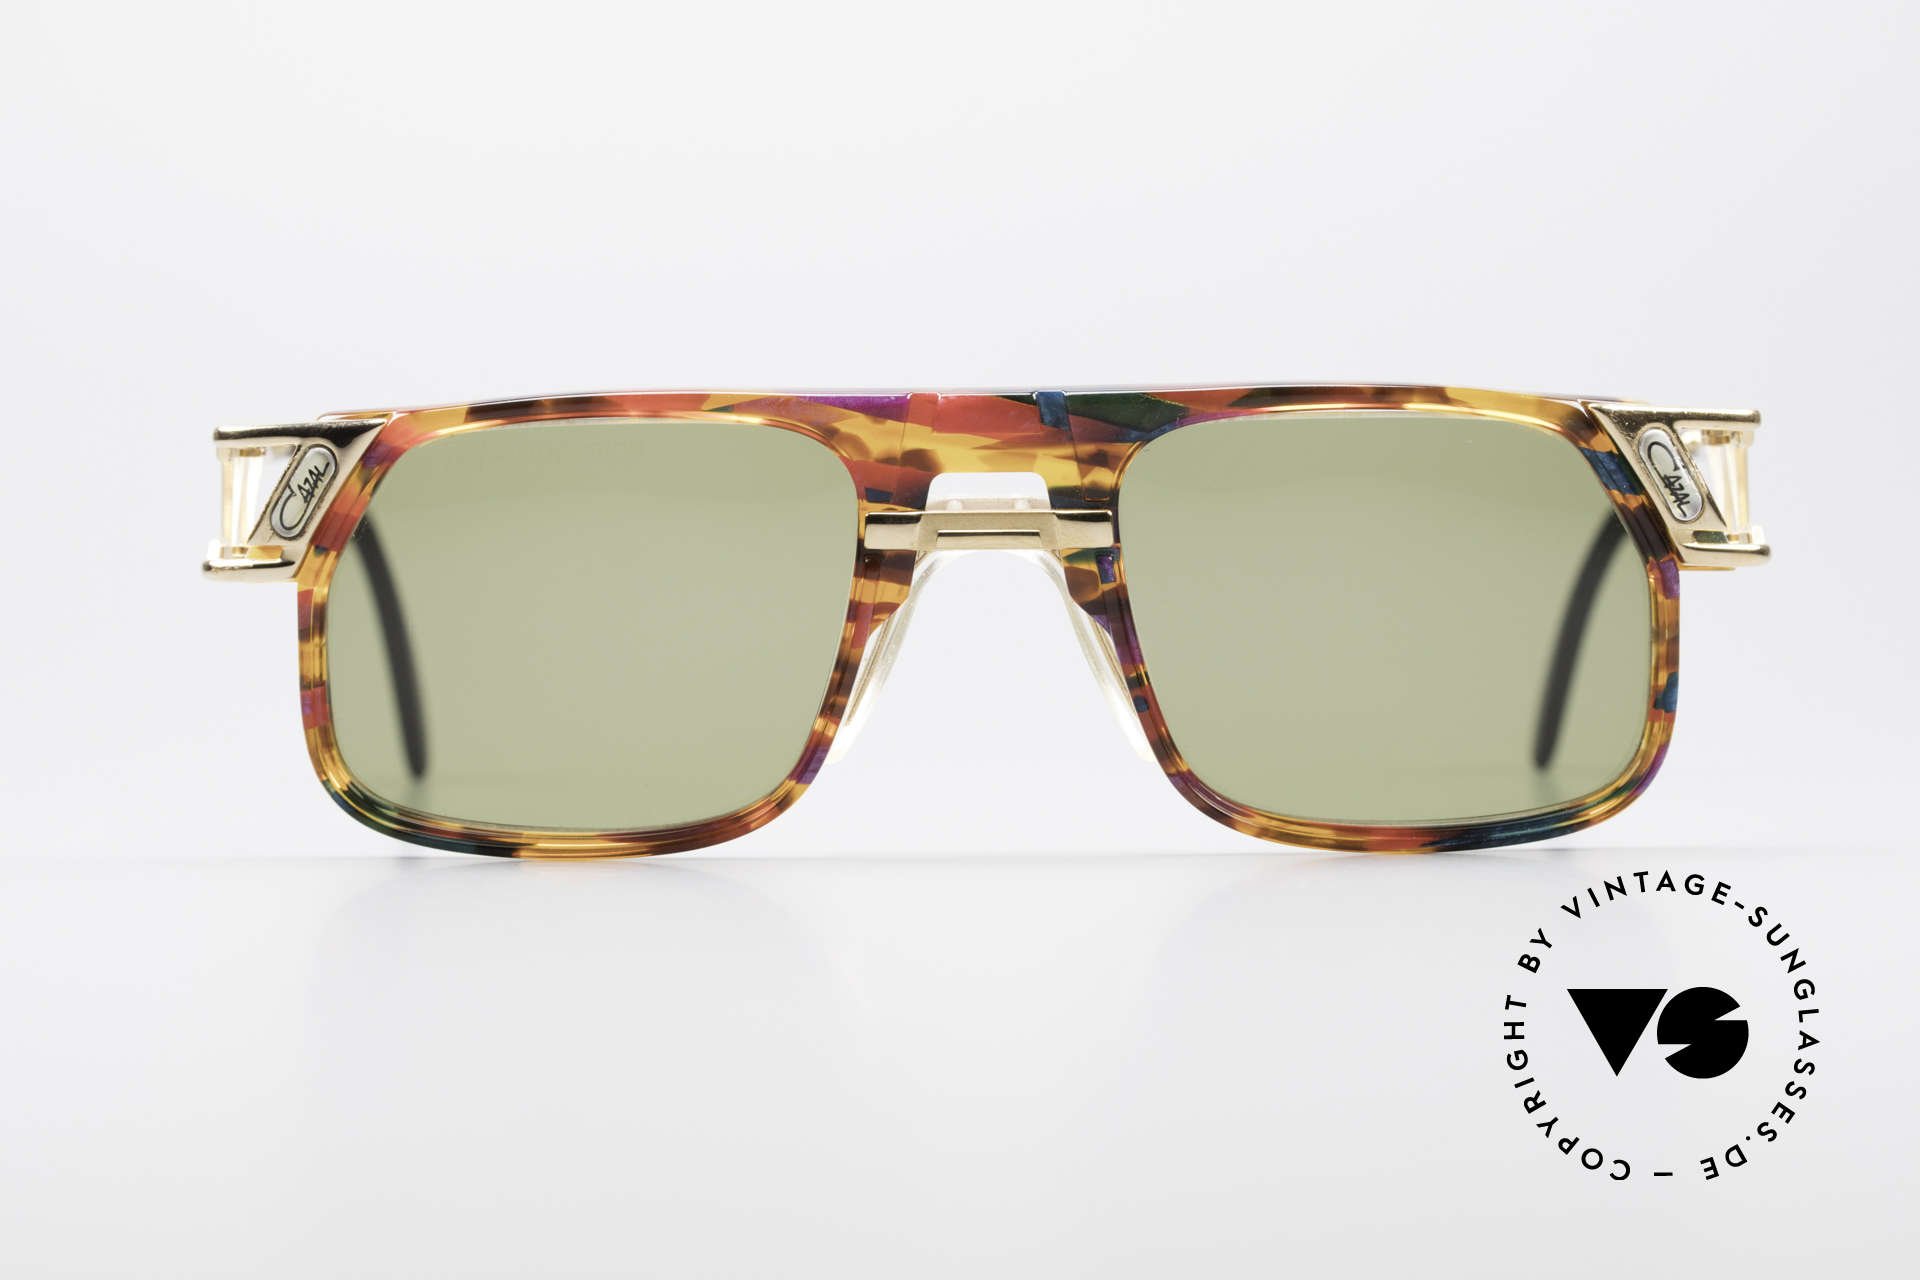 Cazal 876 90's Designer Vintage Shades, made by design icon / style guru CAri ZALloni (CAZAL), Made for Men and Women